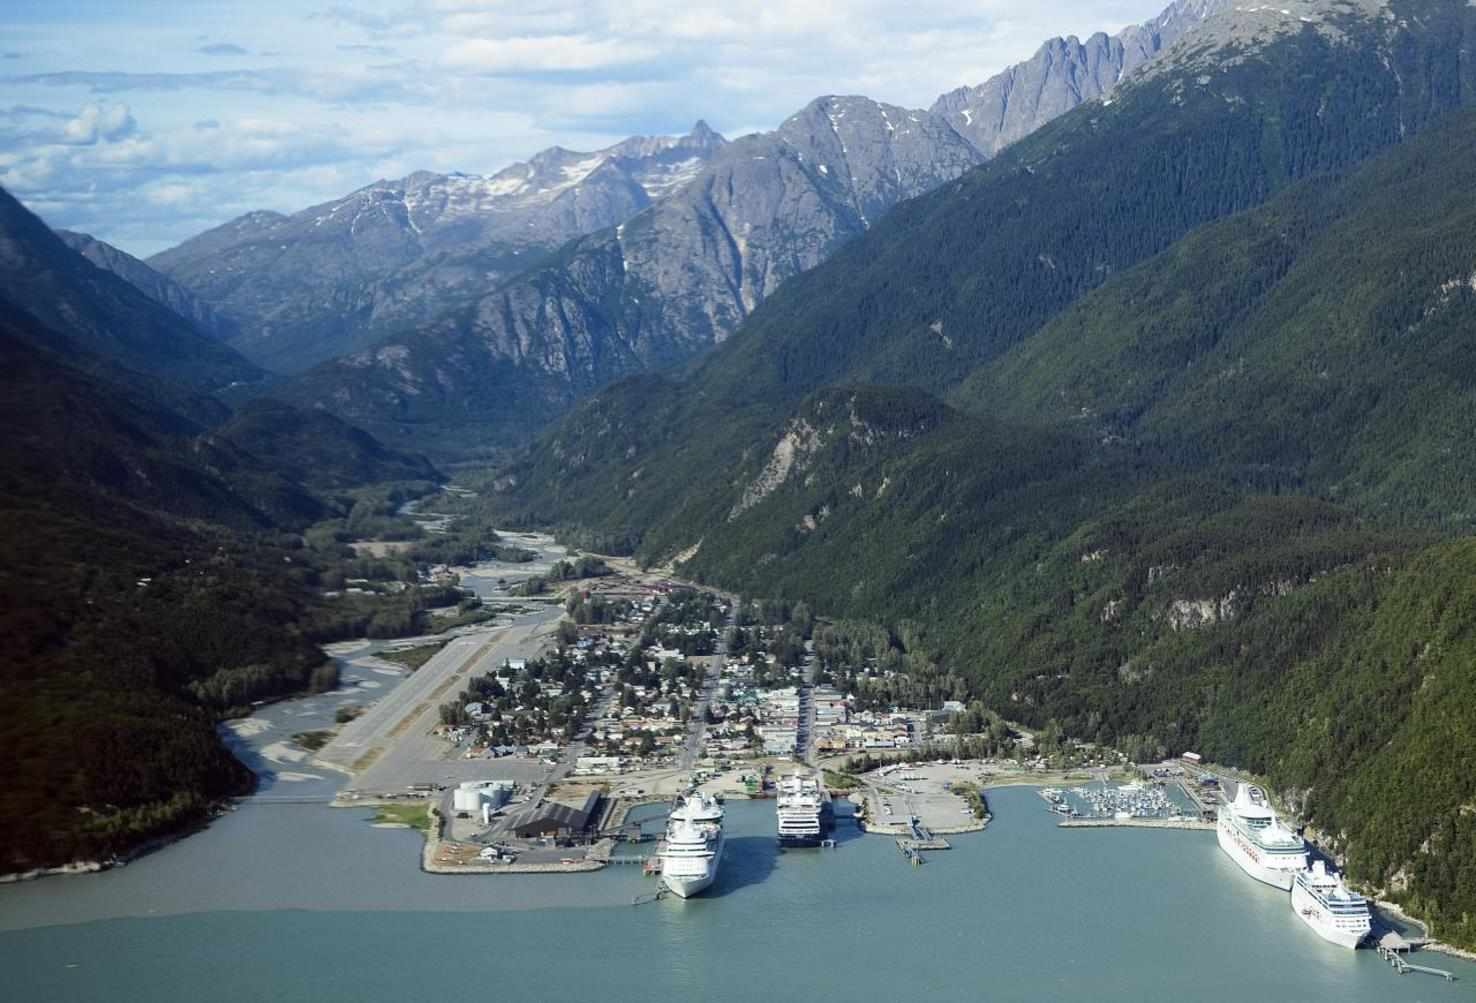 Large skagway aerial view